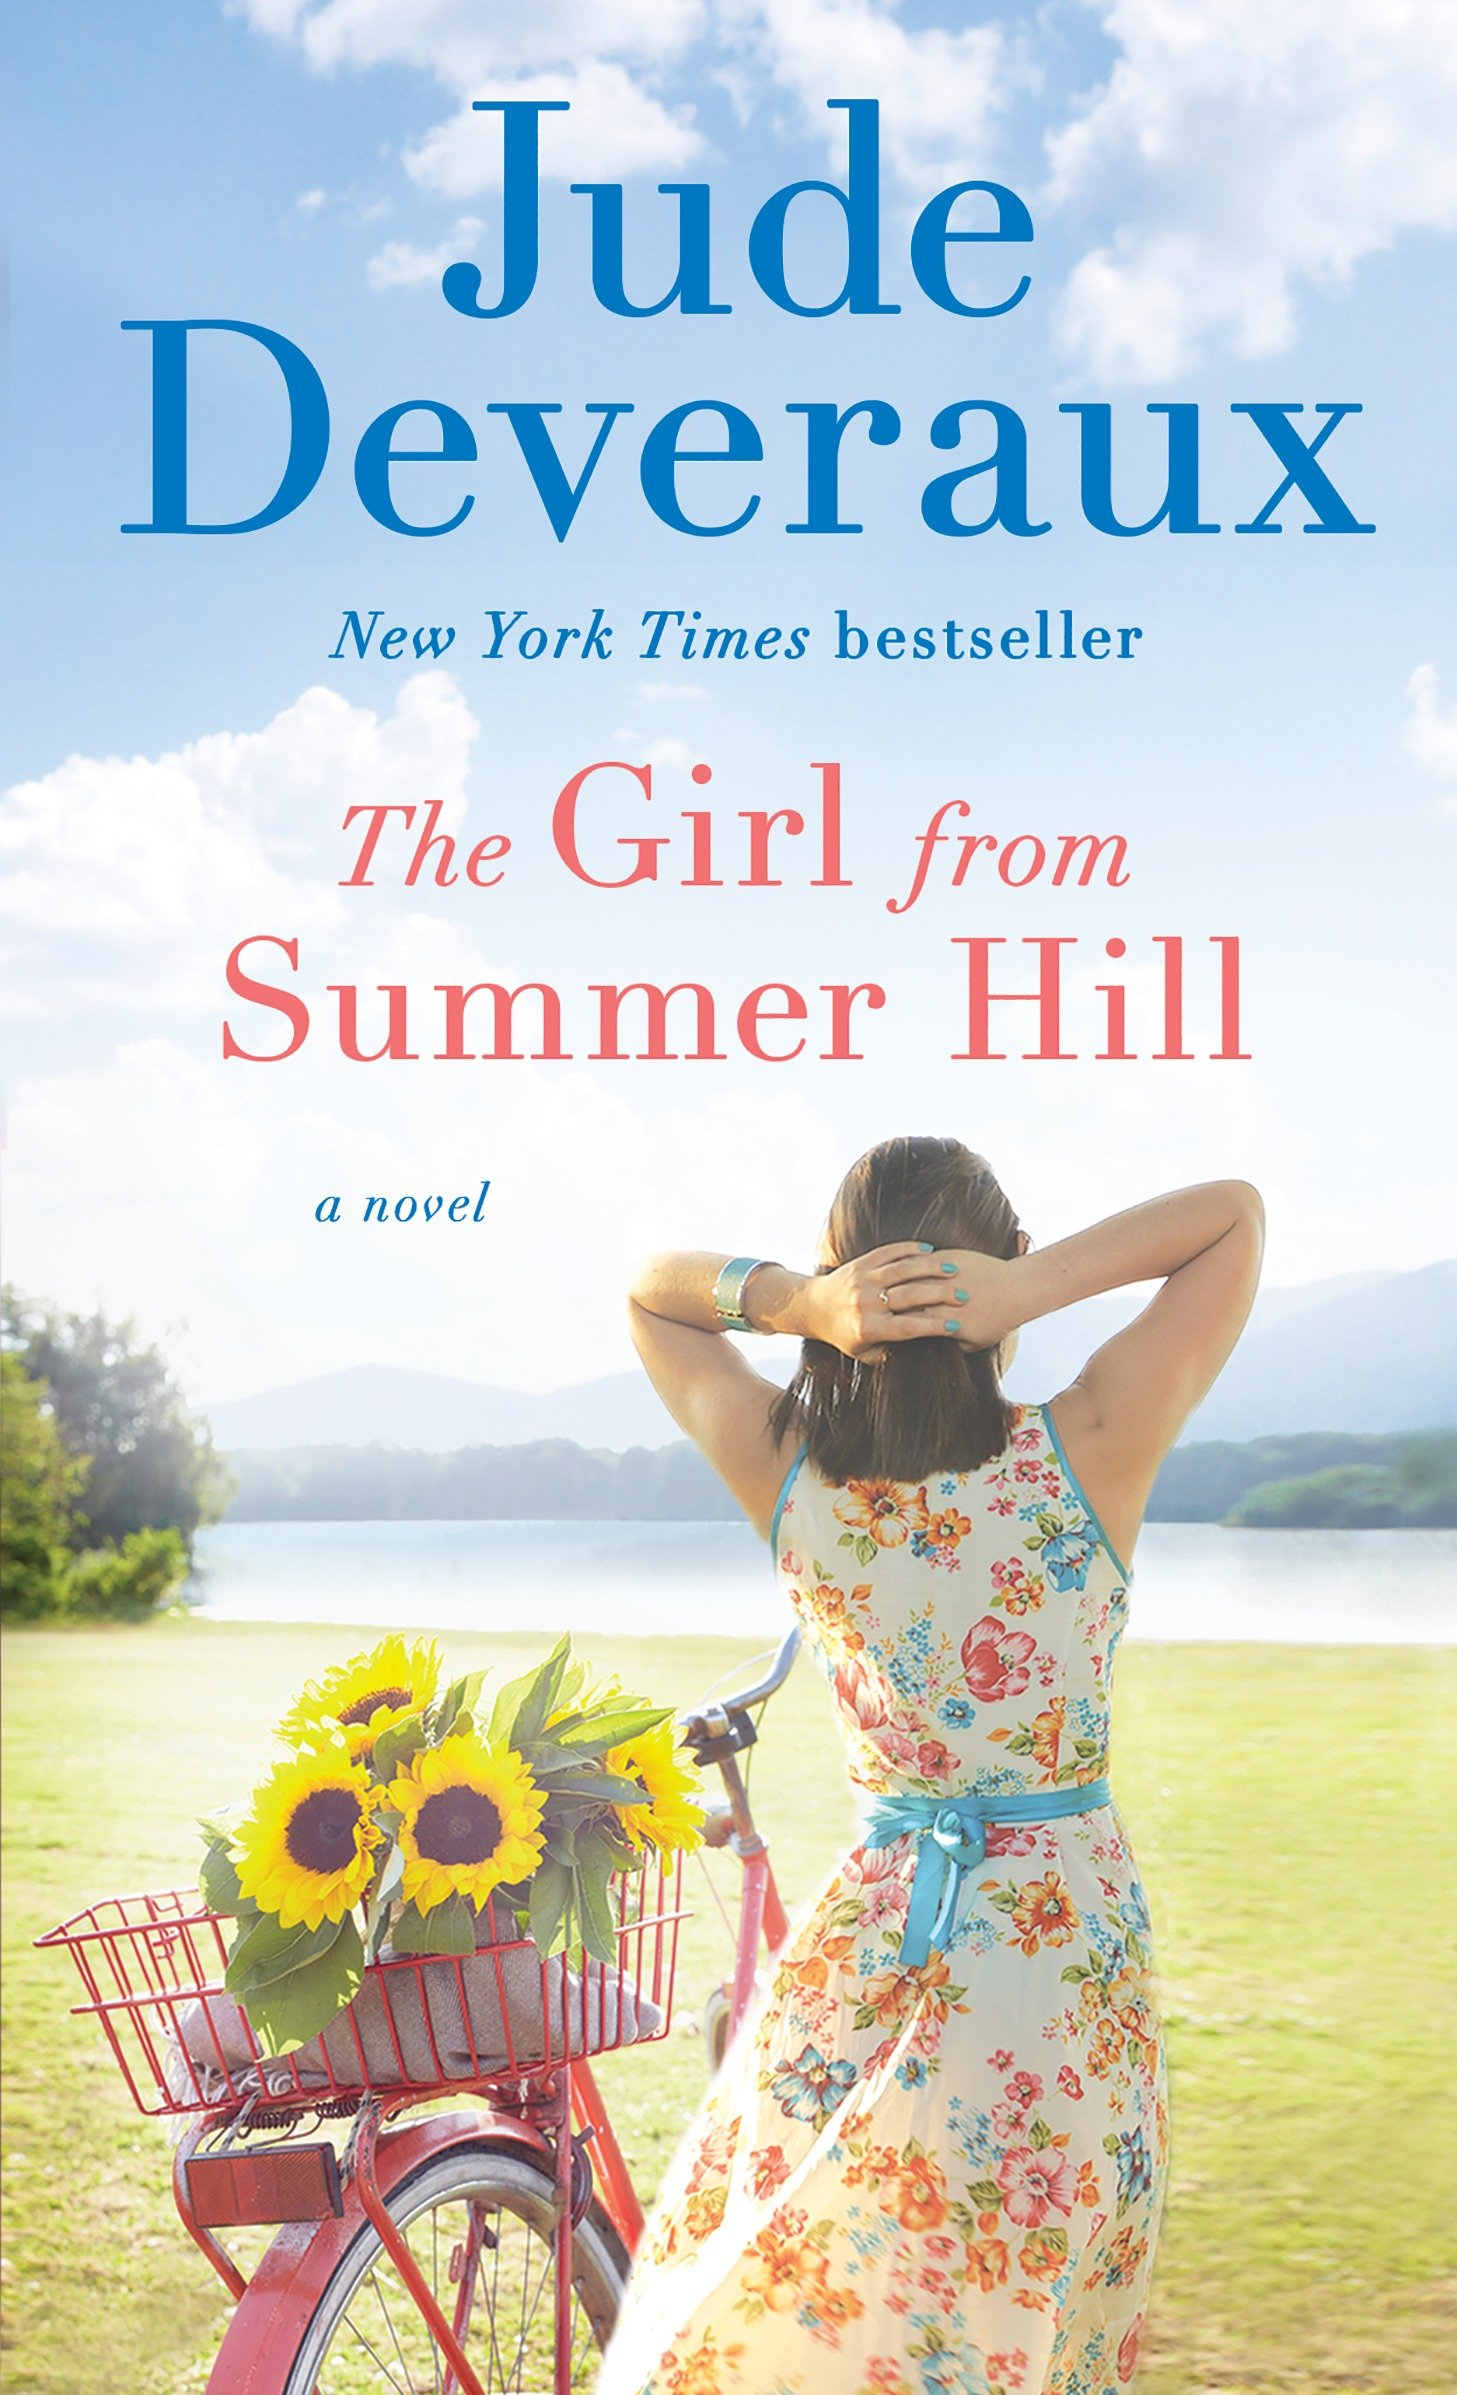 The girl from Summer Hill cover image